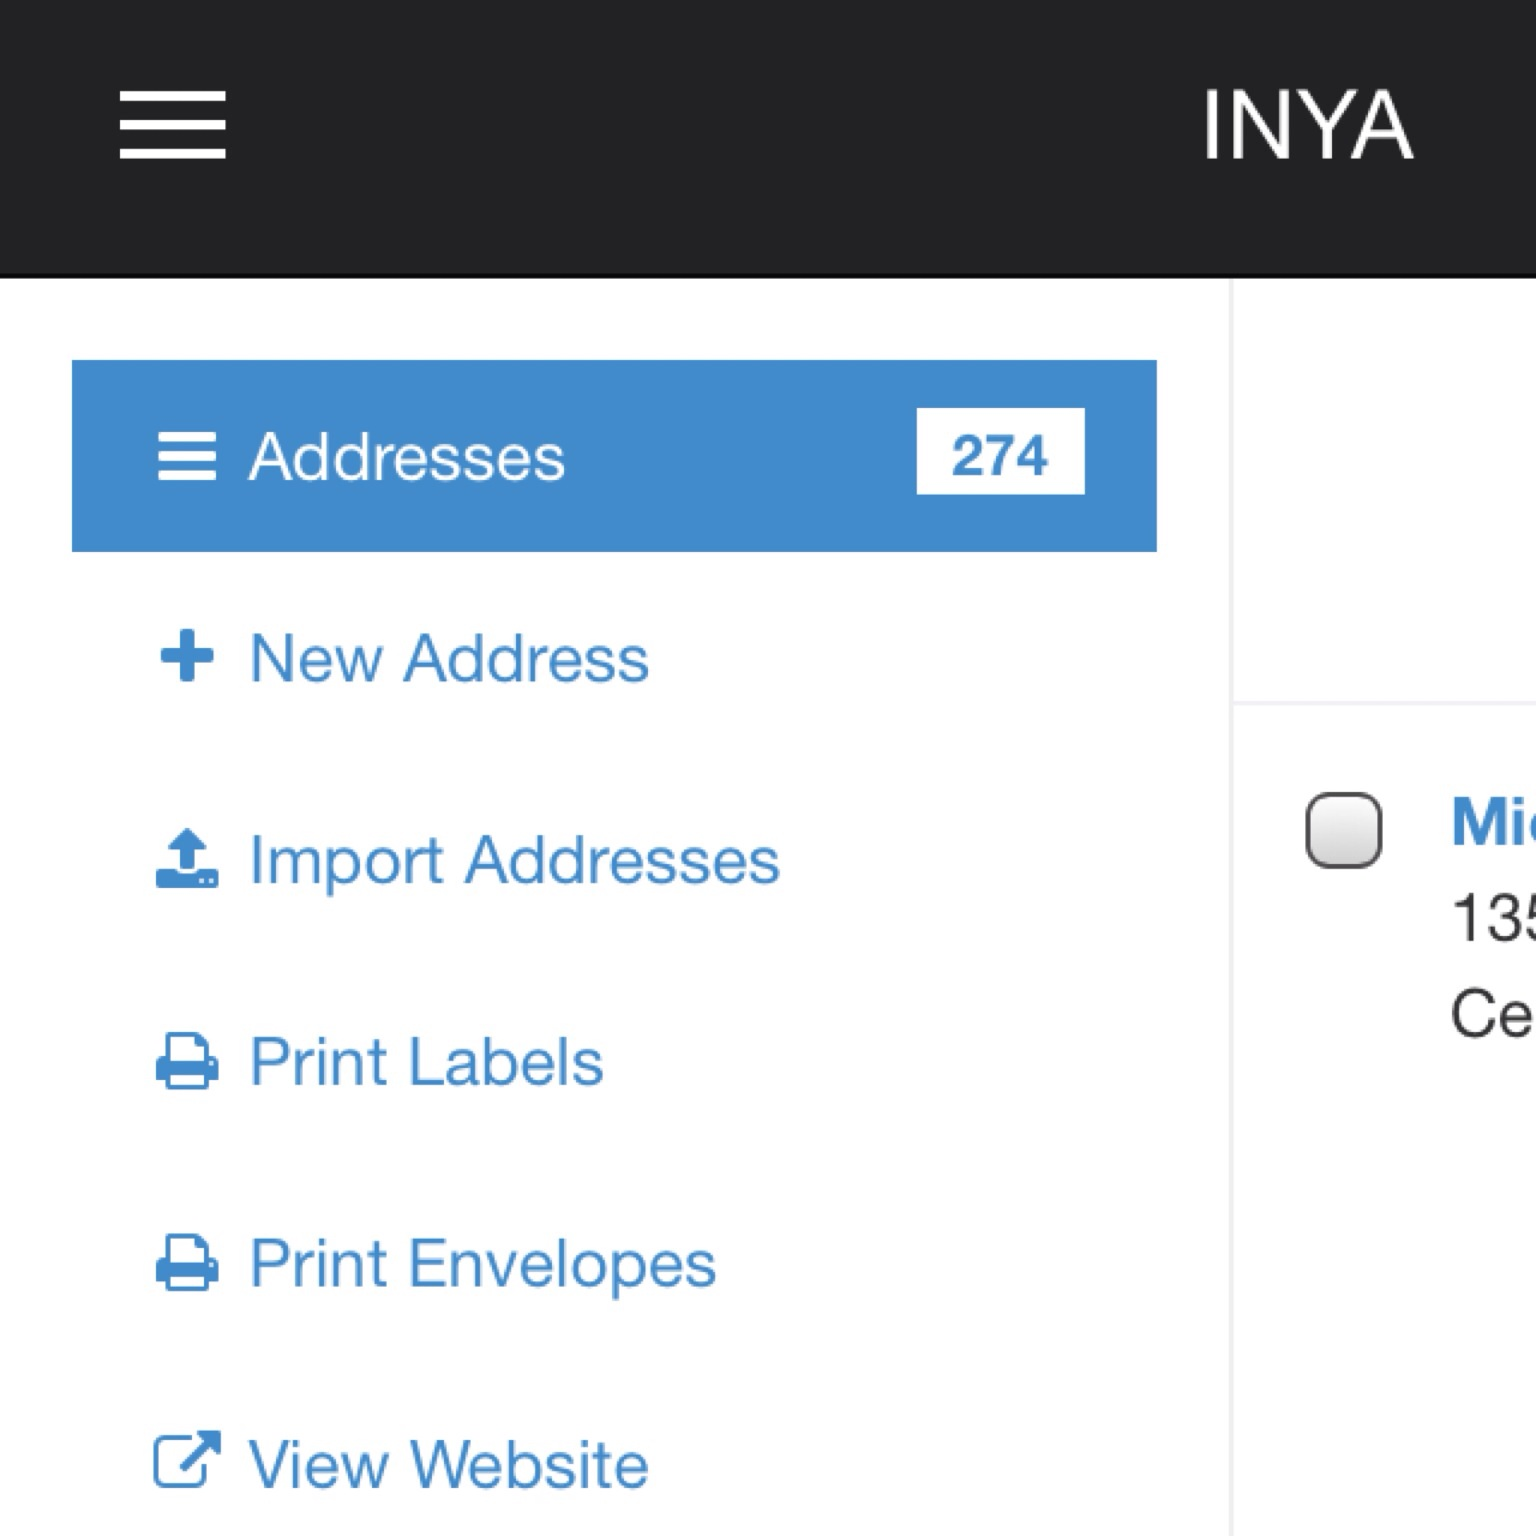 INYA Update: INYA Is Now More Secure with HTTPS